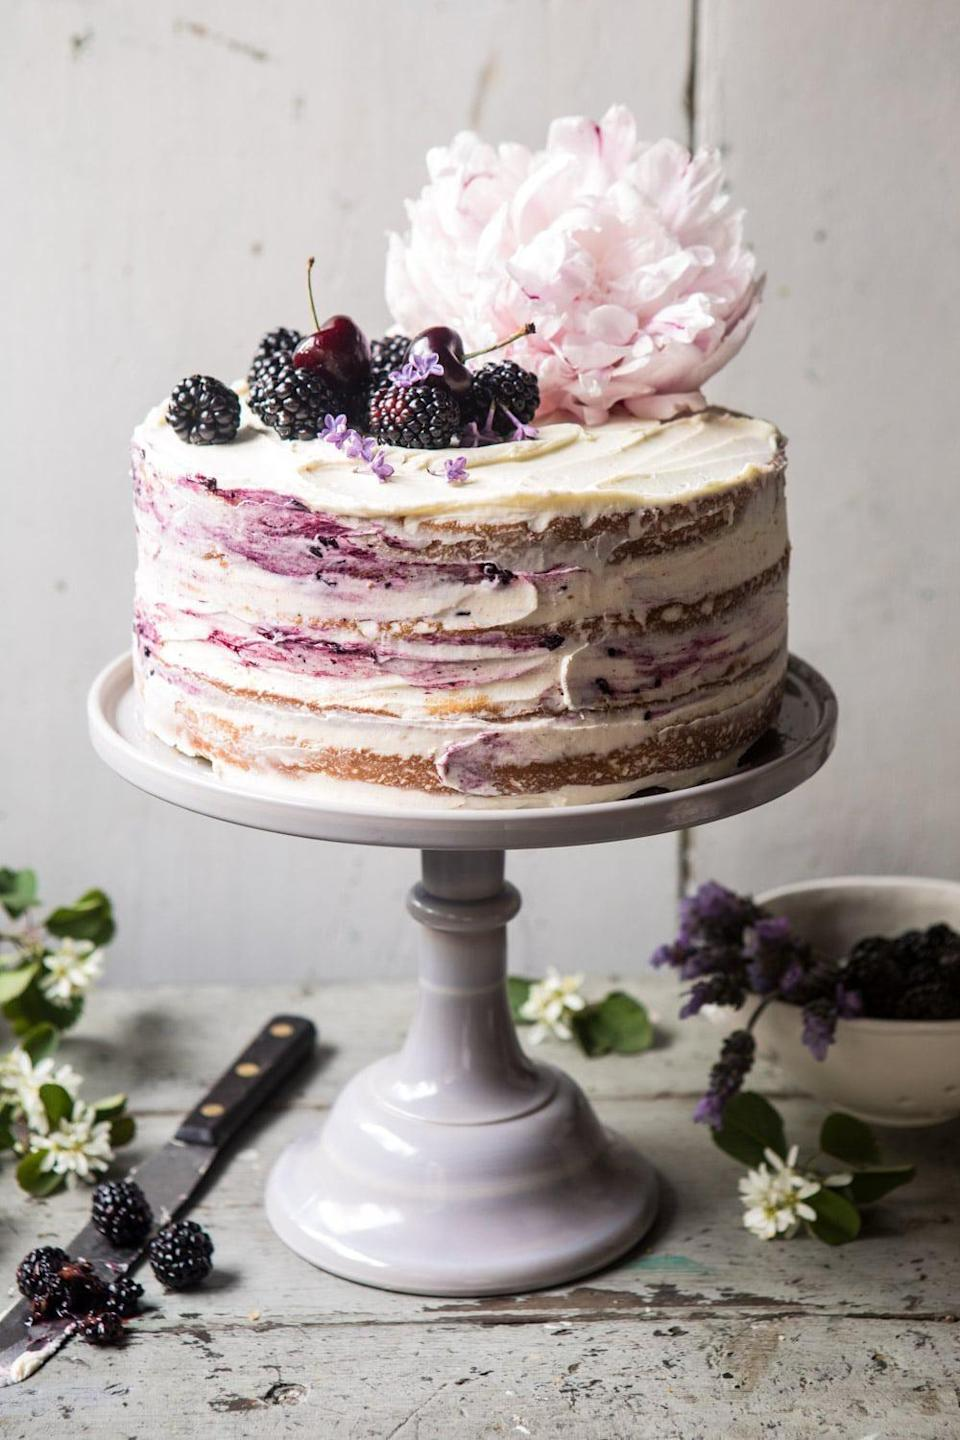 "<p>Take your V-Day celebration to the next level when you make this blackberry lavender masterpiece. It's complete with four layers of cake, white-chocolate buttercream, and homemade blackberry lavender jam, and your partner will crown you the best baker of all.</p> <p><strong>Get the recipe</strong>: <a href=""https://www.halfbakedharvest.com/blackberry-lavender-naked-cake/"" class=""link rapid-noclick-resp"" rel=""nofollow noopener"" target=""_blank"" data-ylk=""slk:blackberry lavender naked cake with white-chocolate buttercream"">blackberry lavender naked cake with white-chocolate buttercream</a></p>"